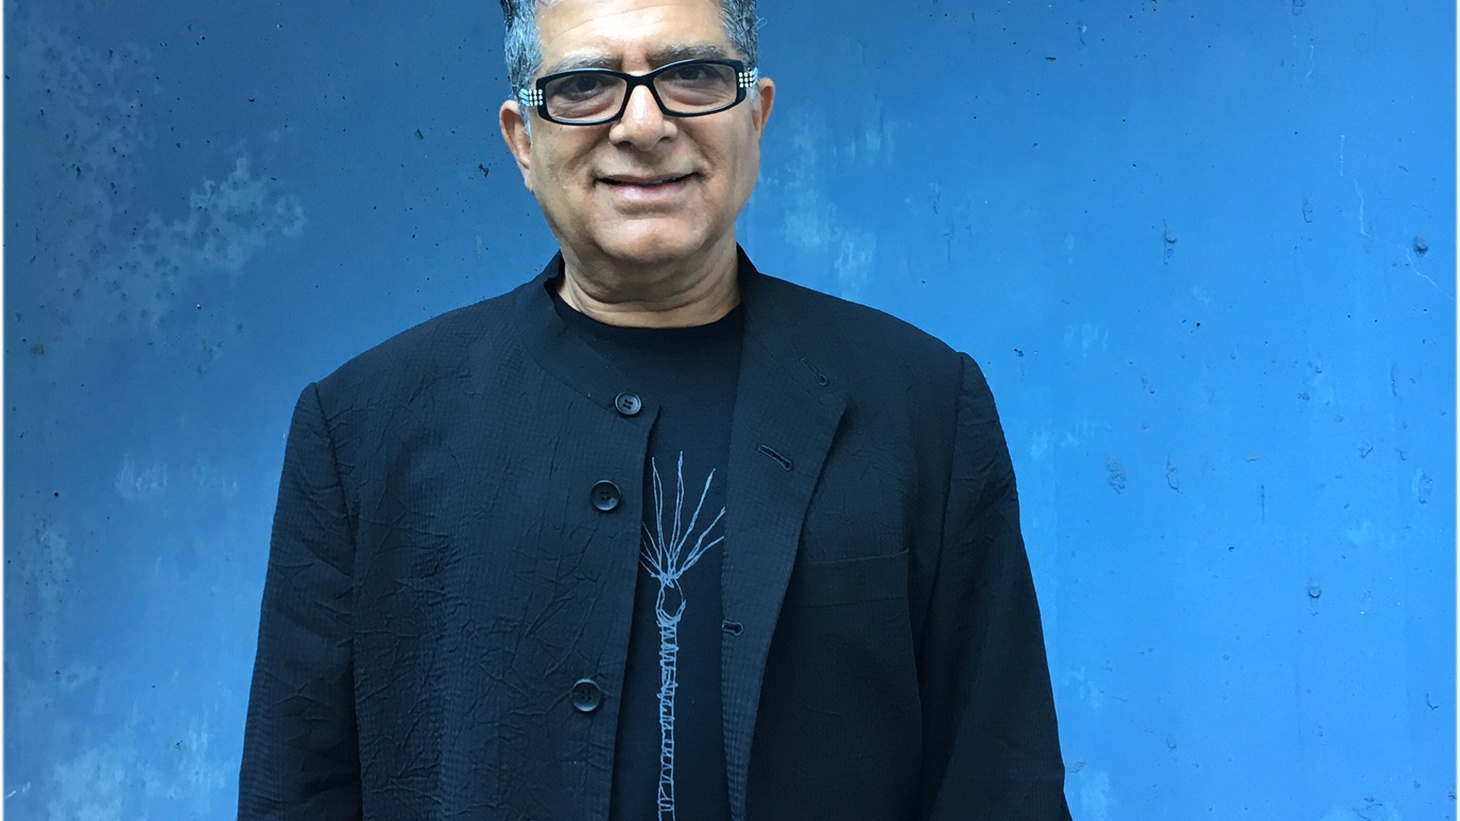 Deepak Chopra song picks are by artists who were fascinated by his work, including Michael Jackson and George Harrison.